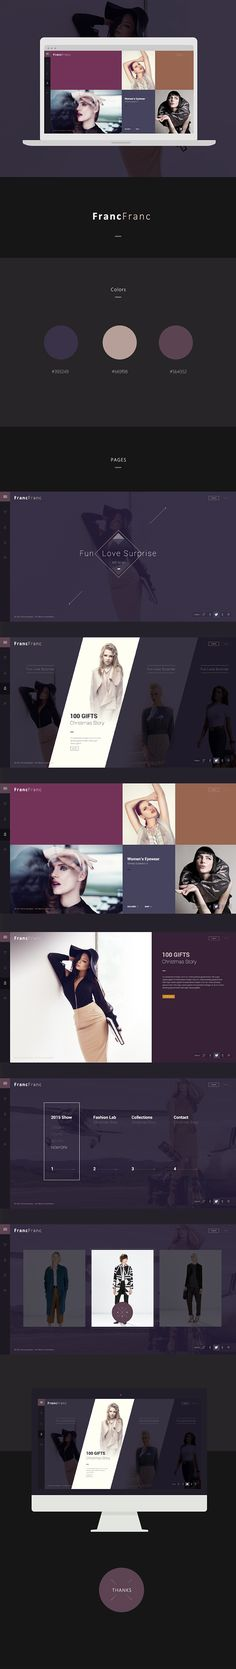 website concept design on Behance